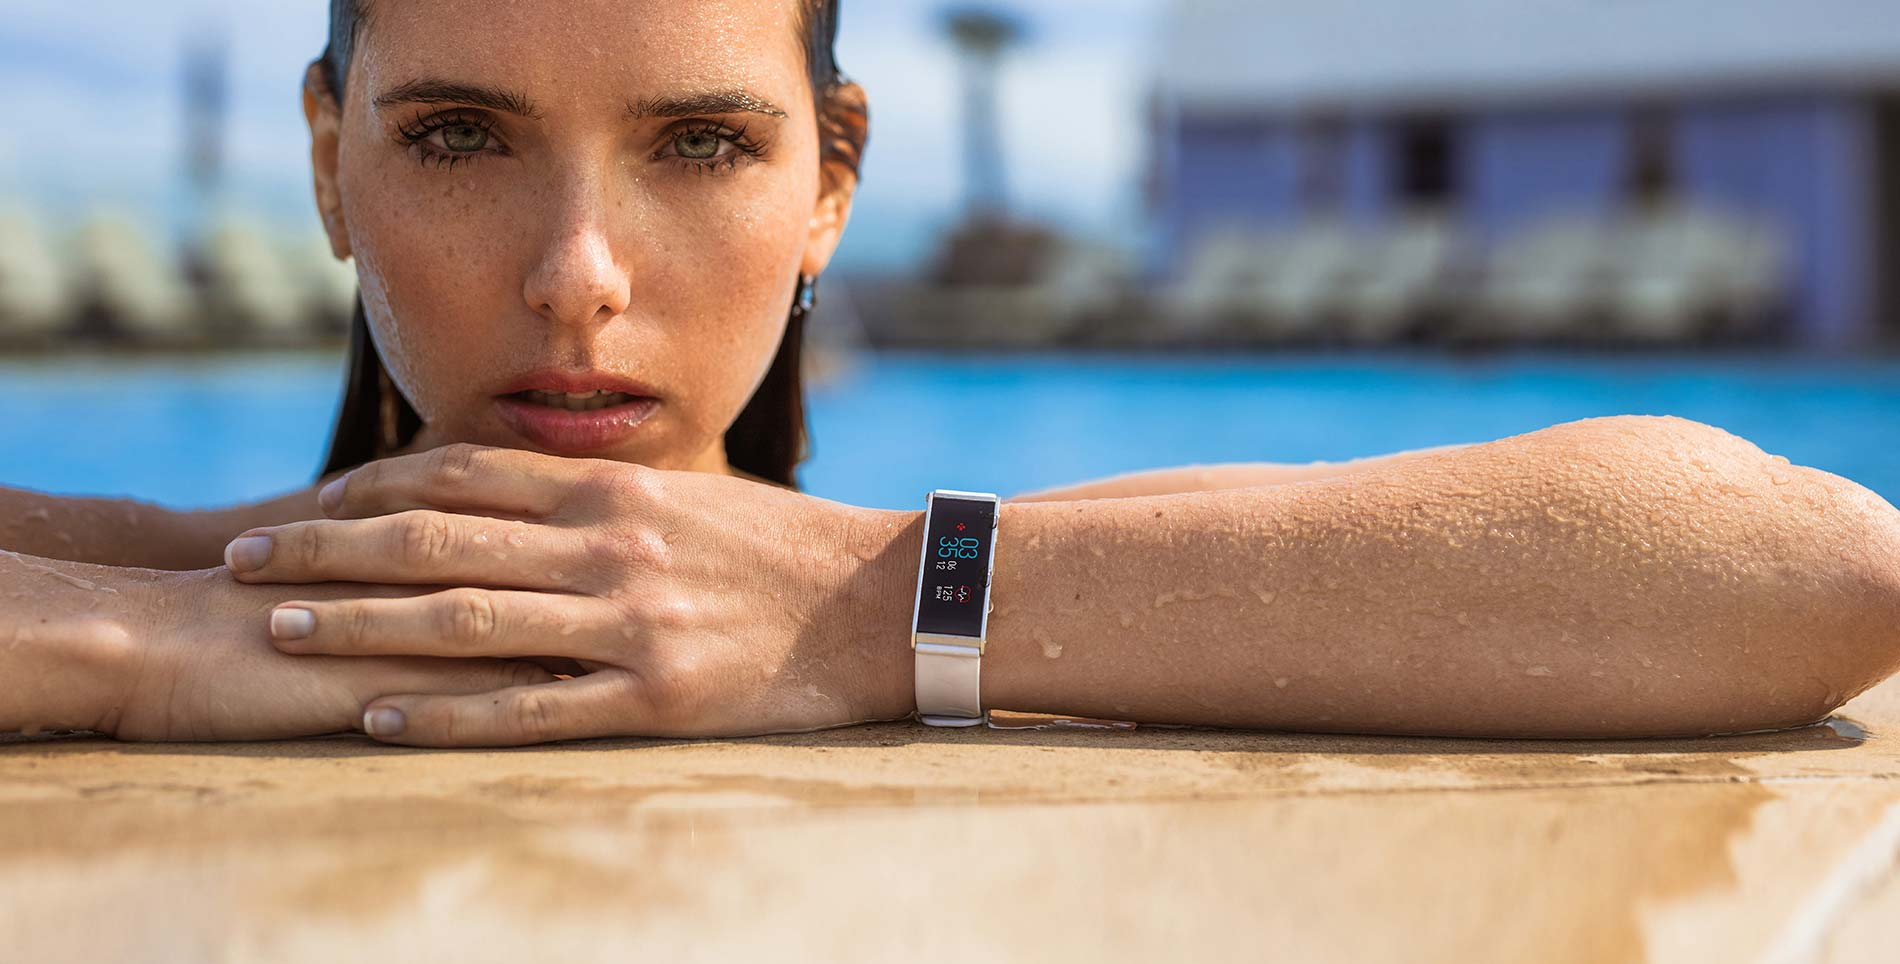 Water resistant activity tracker. IP67, 6: Protected from dust, 7: Protected against the effects of immersion in water to depth between 15 cm and 1 meter